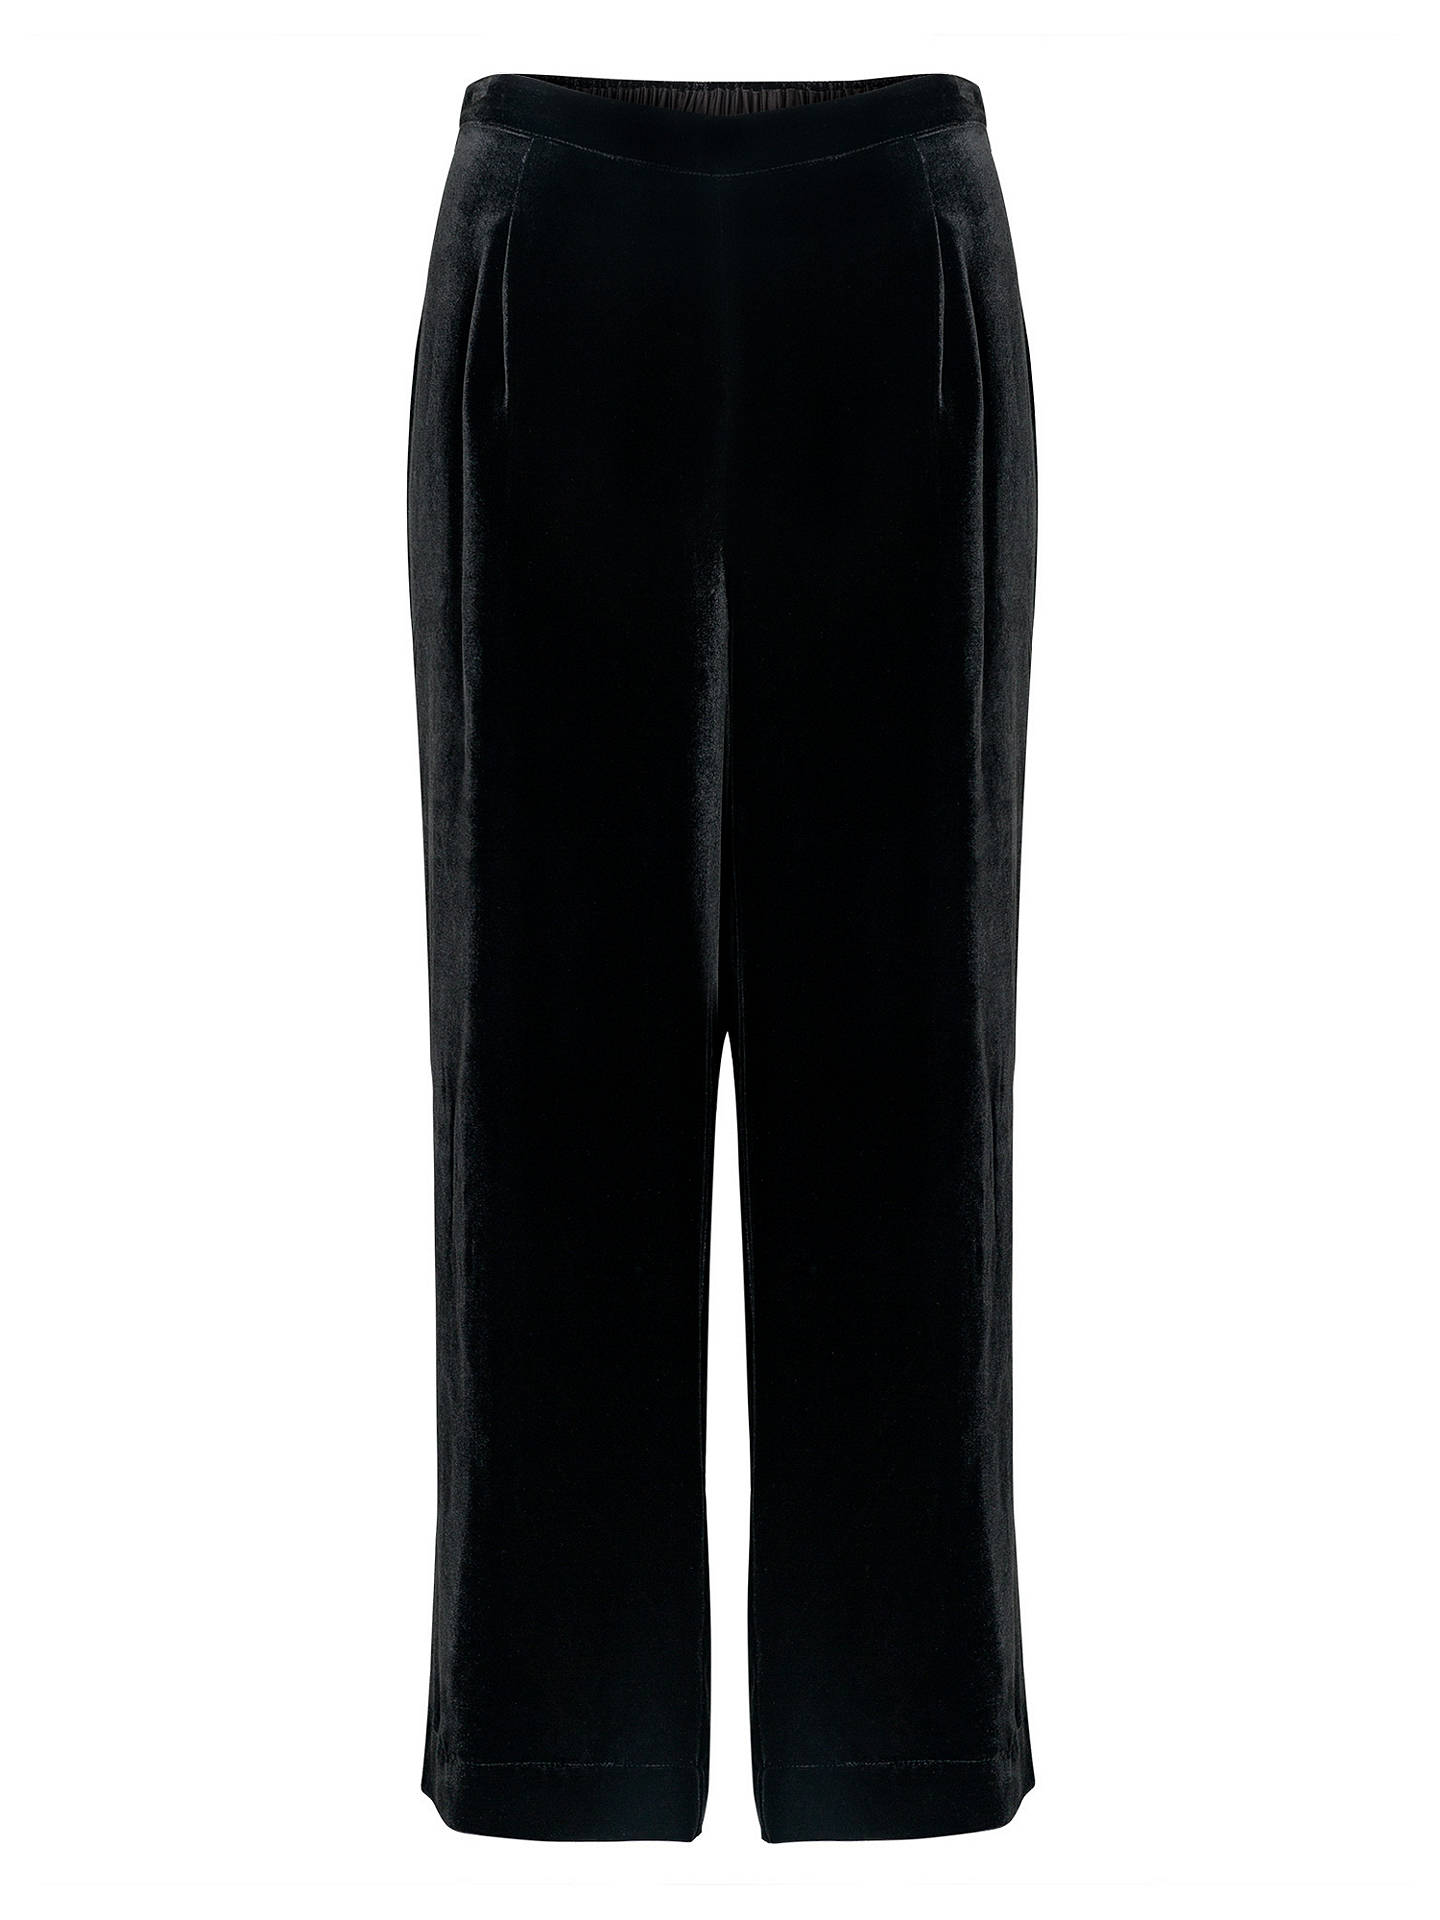 BuyEast Velvet Cropped Trousers, Black, 10 Online at johnlewis.com